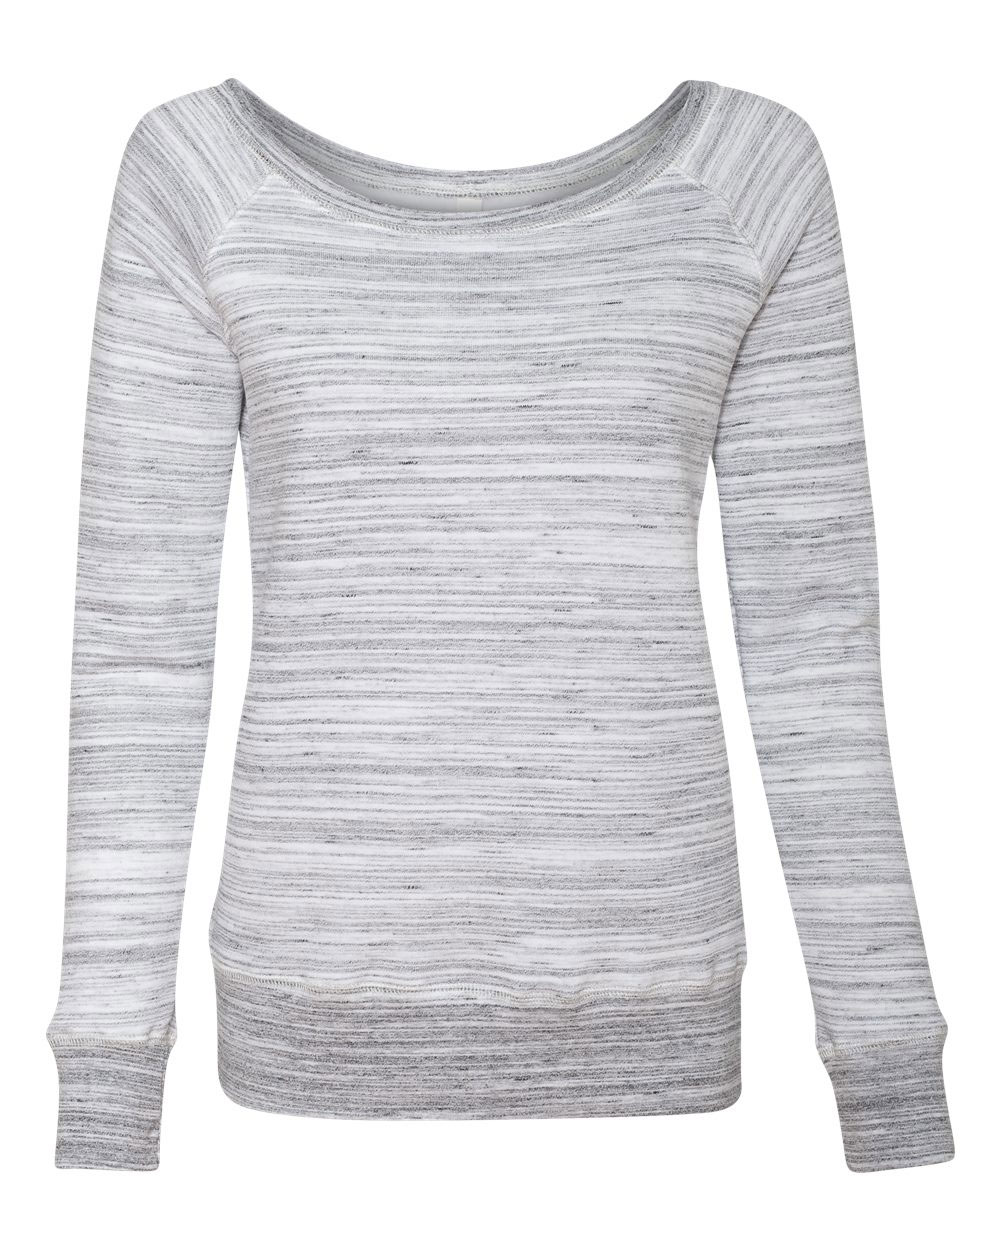 Bella + Canvas Ladies Sponge Fleece Wide Neck  Sweatshirt